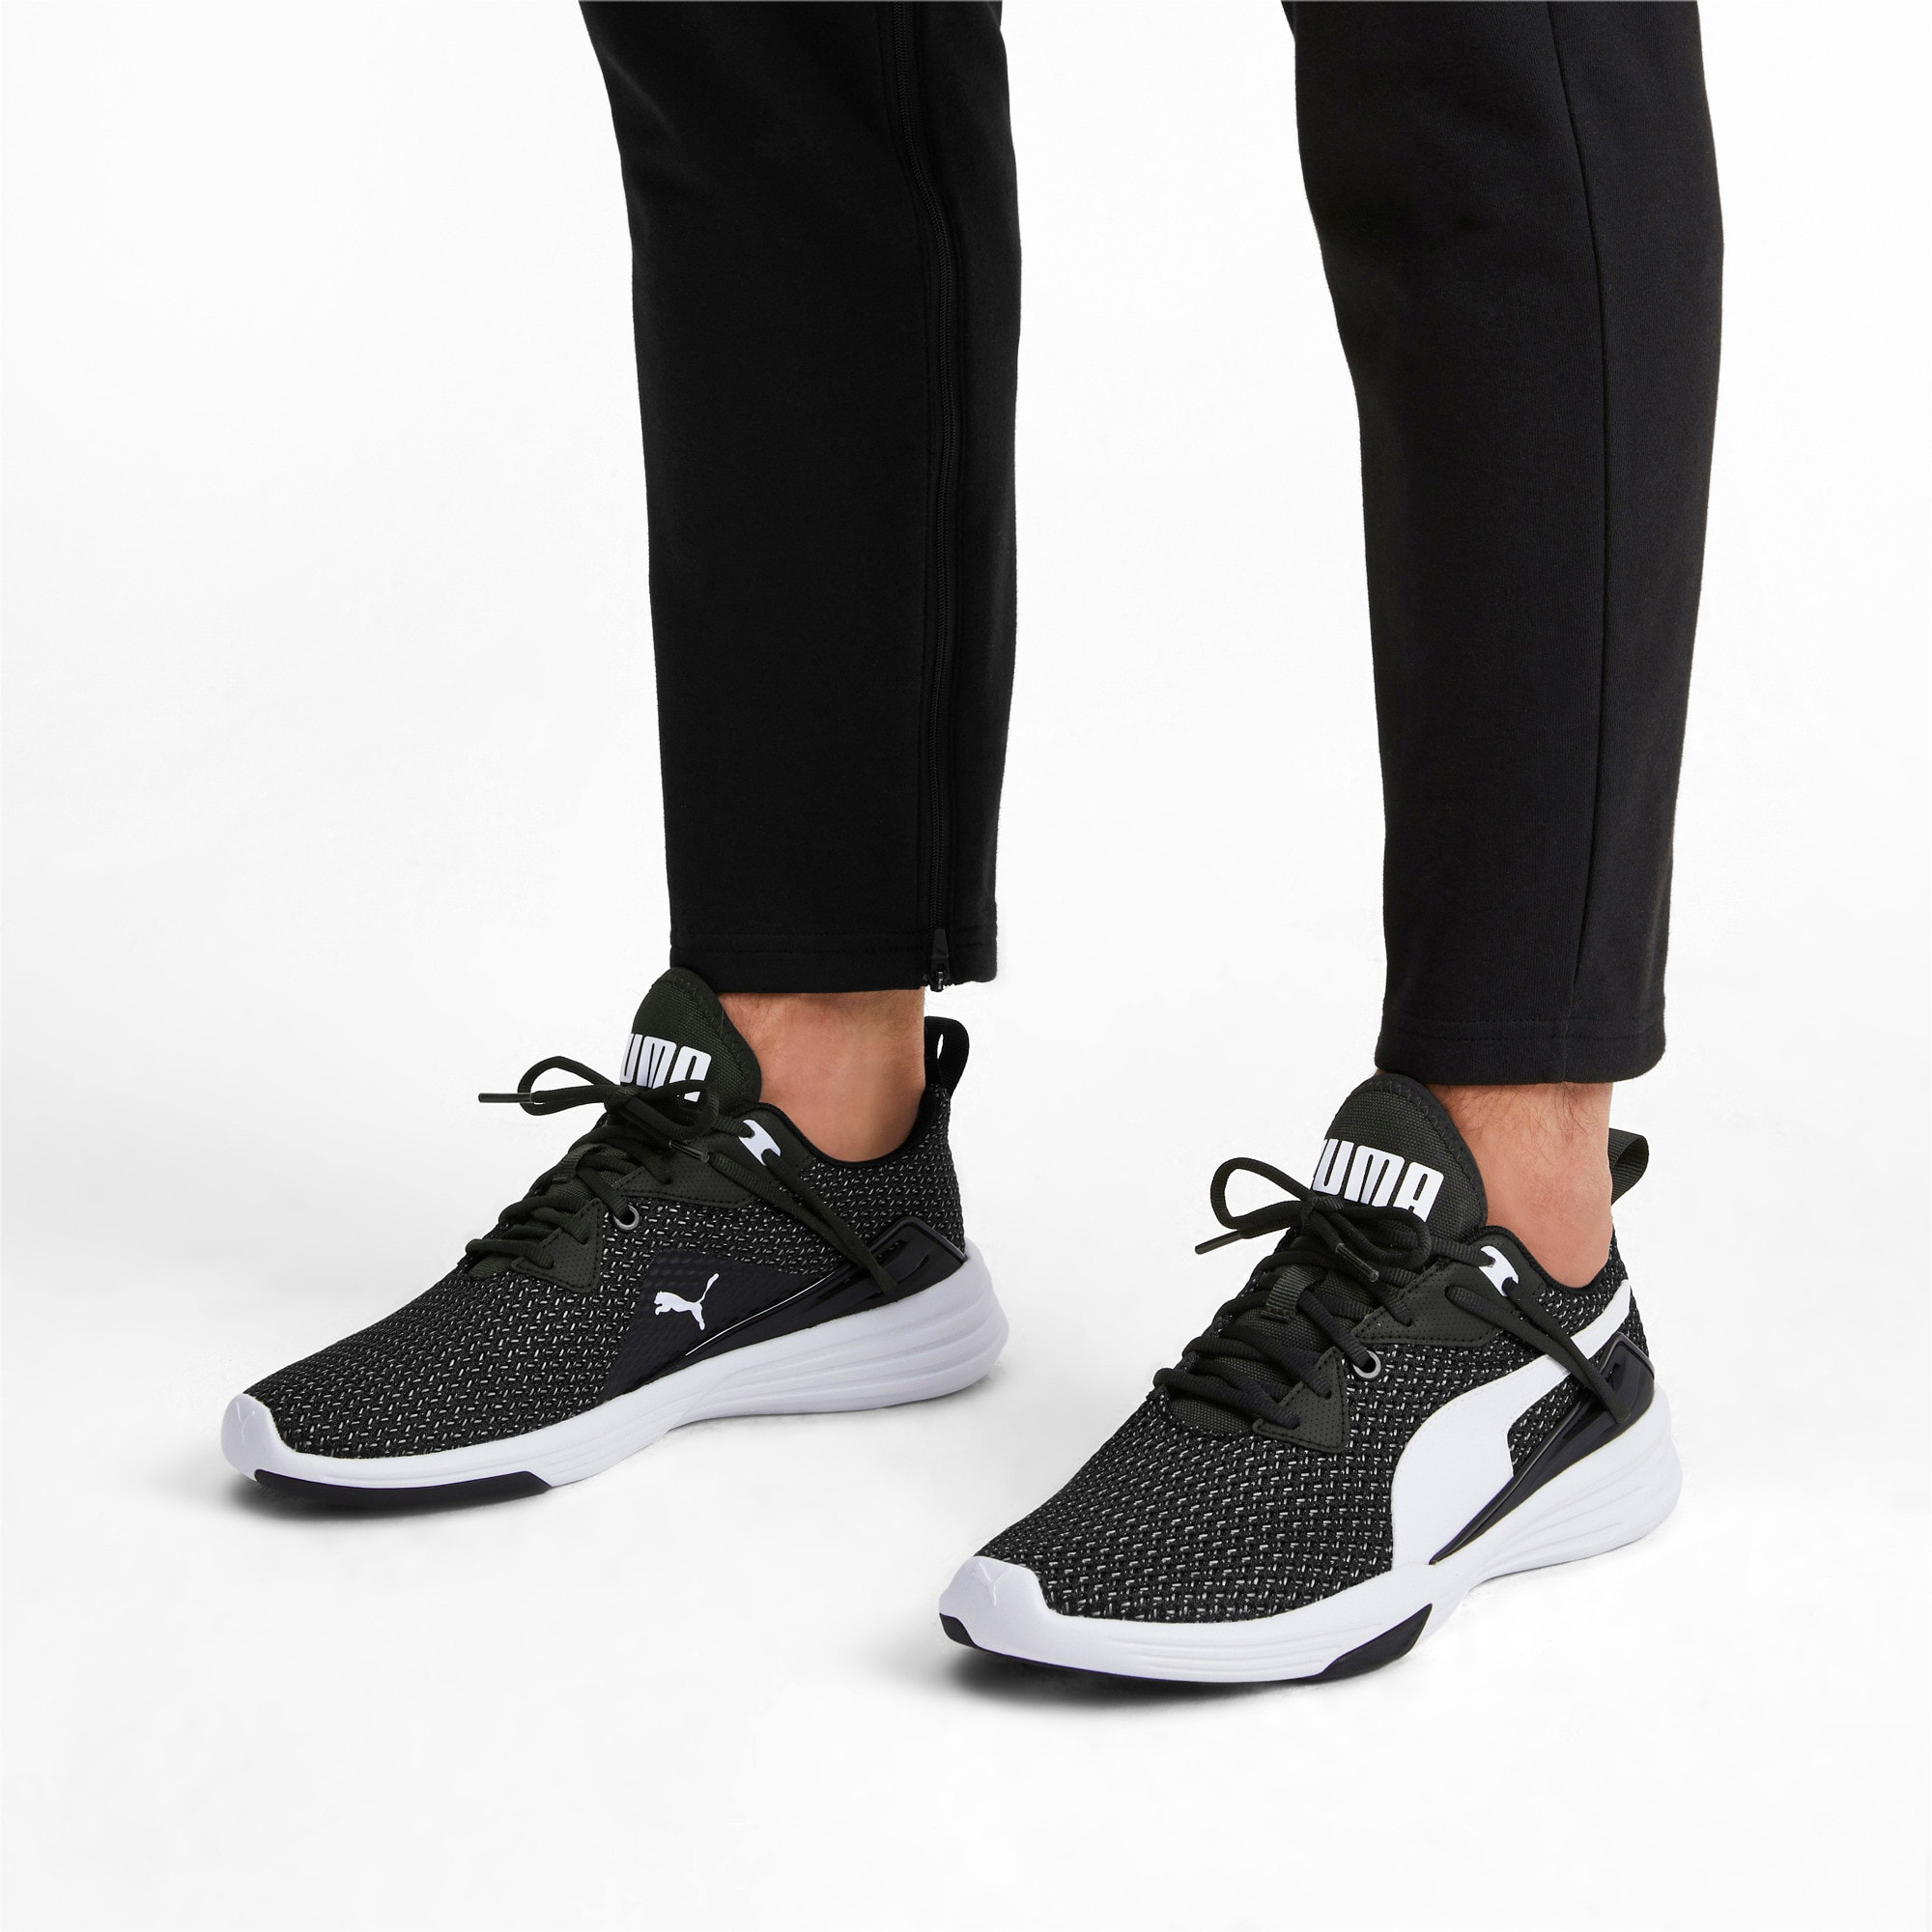 Thumbnail 2 of Aura XT Men's Trainers, Puma Black-Puma White, medium-IND